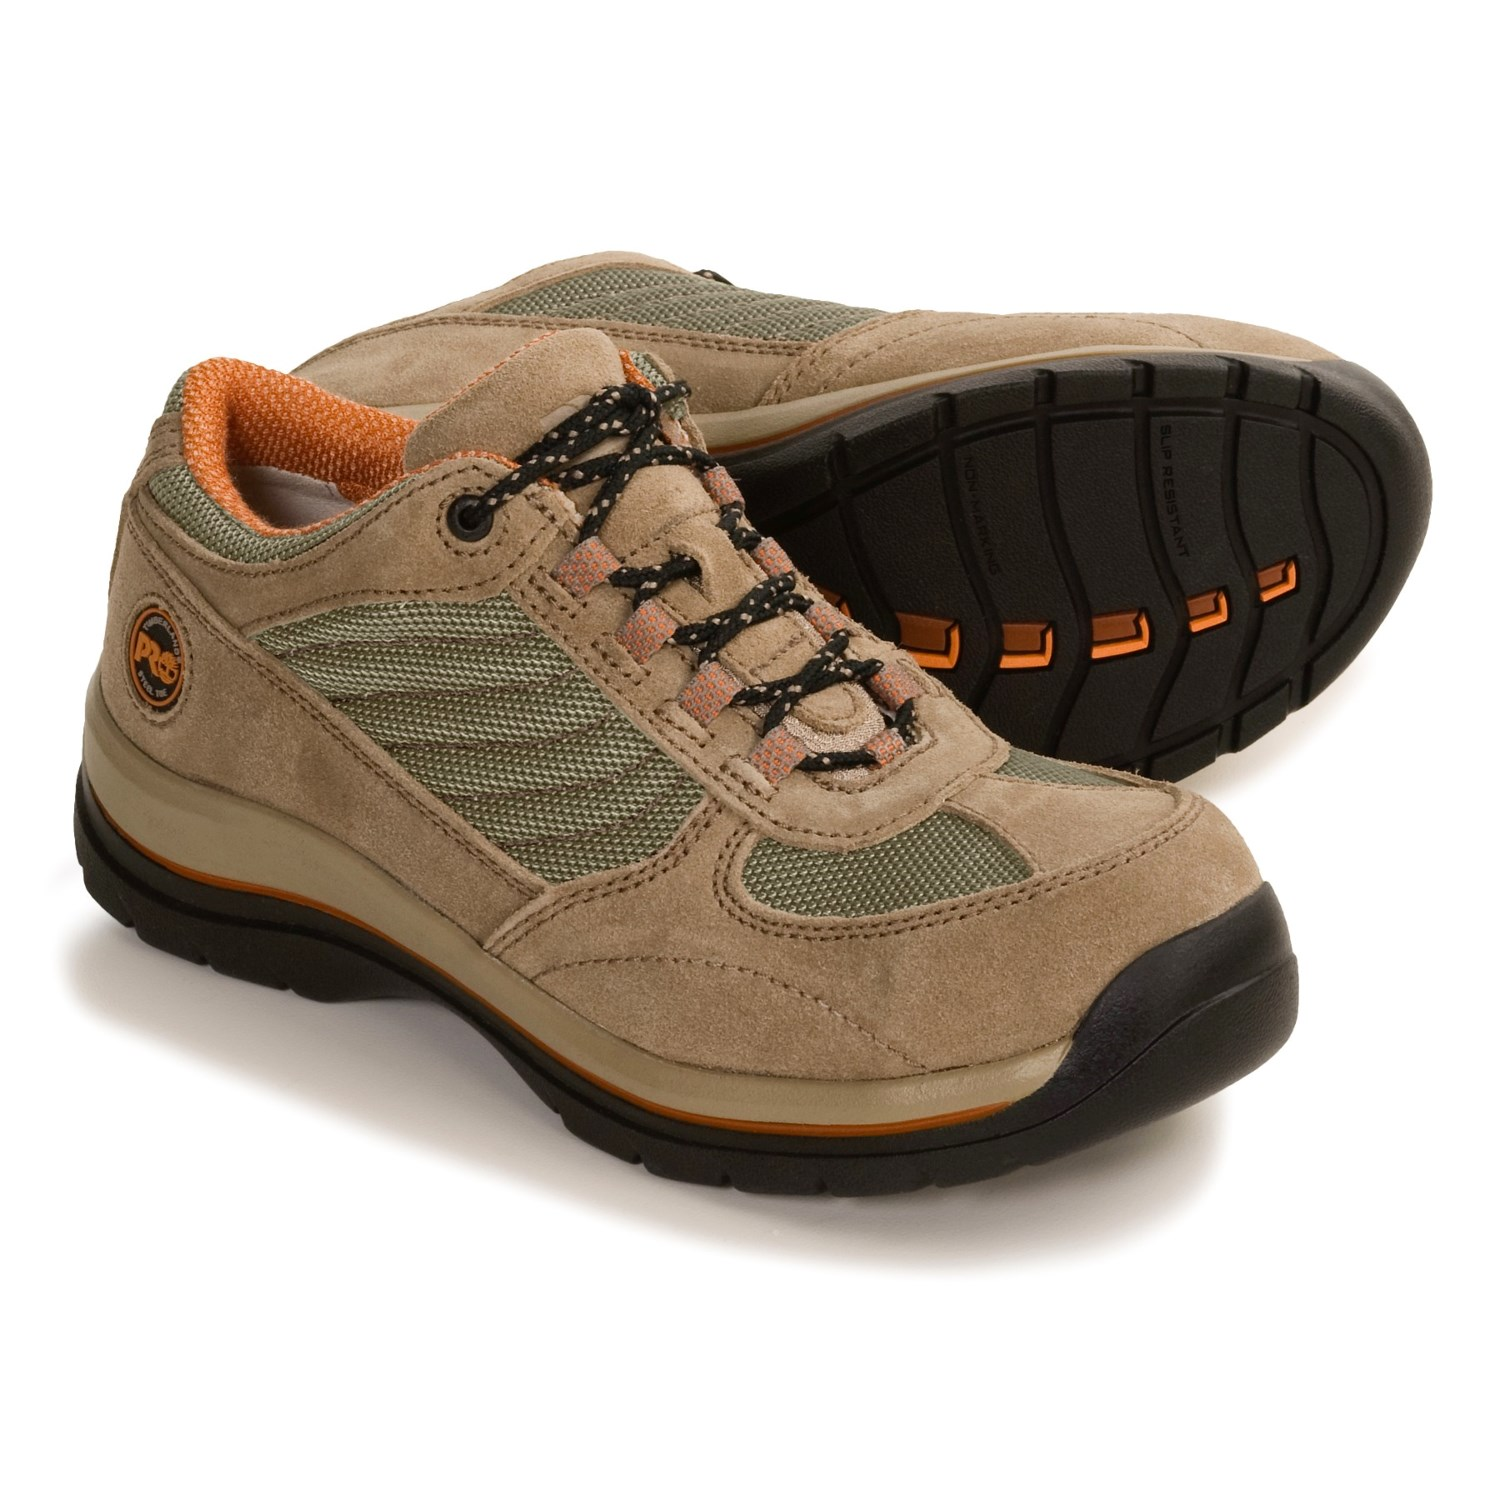 Timberland Pro Riveter Work Shoes (For Women) 2866Y - Save 38%